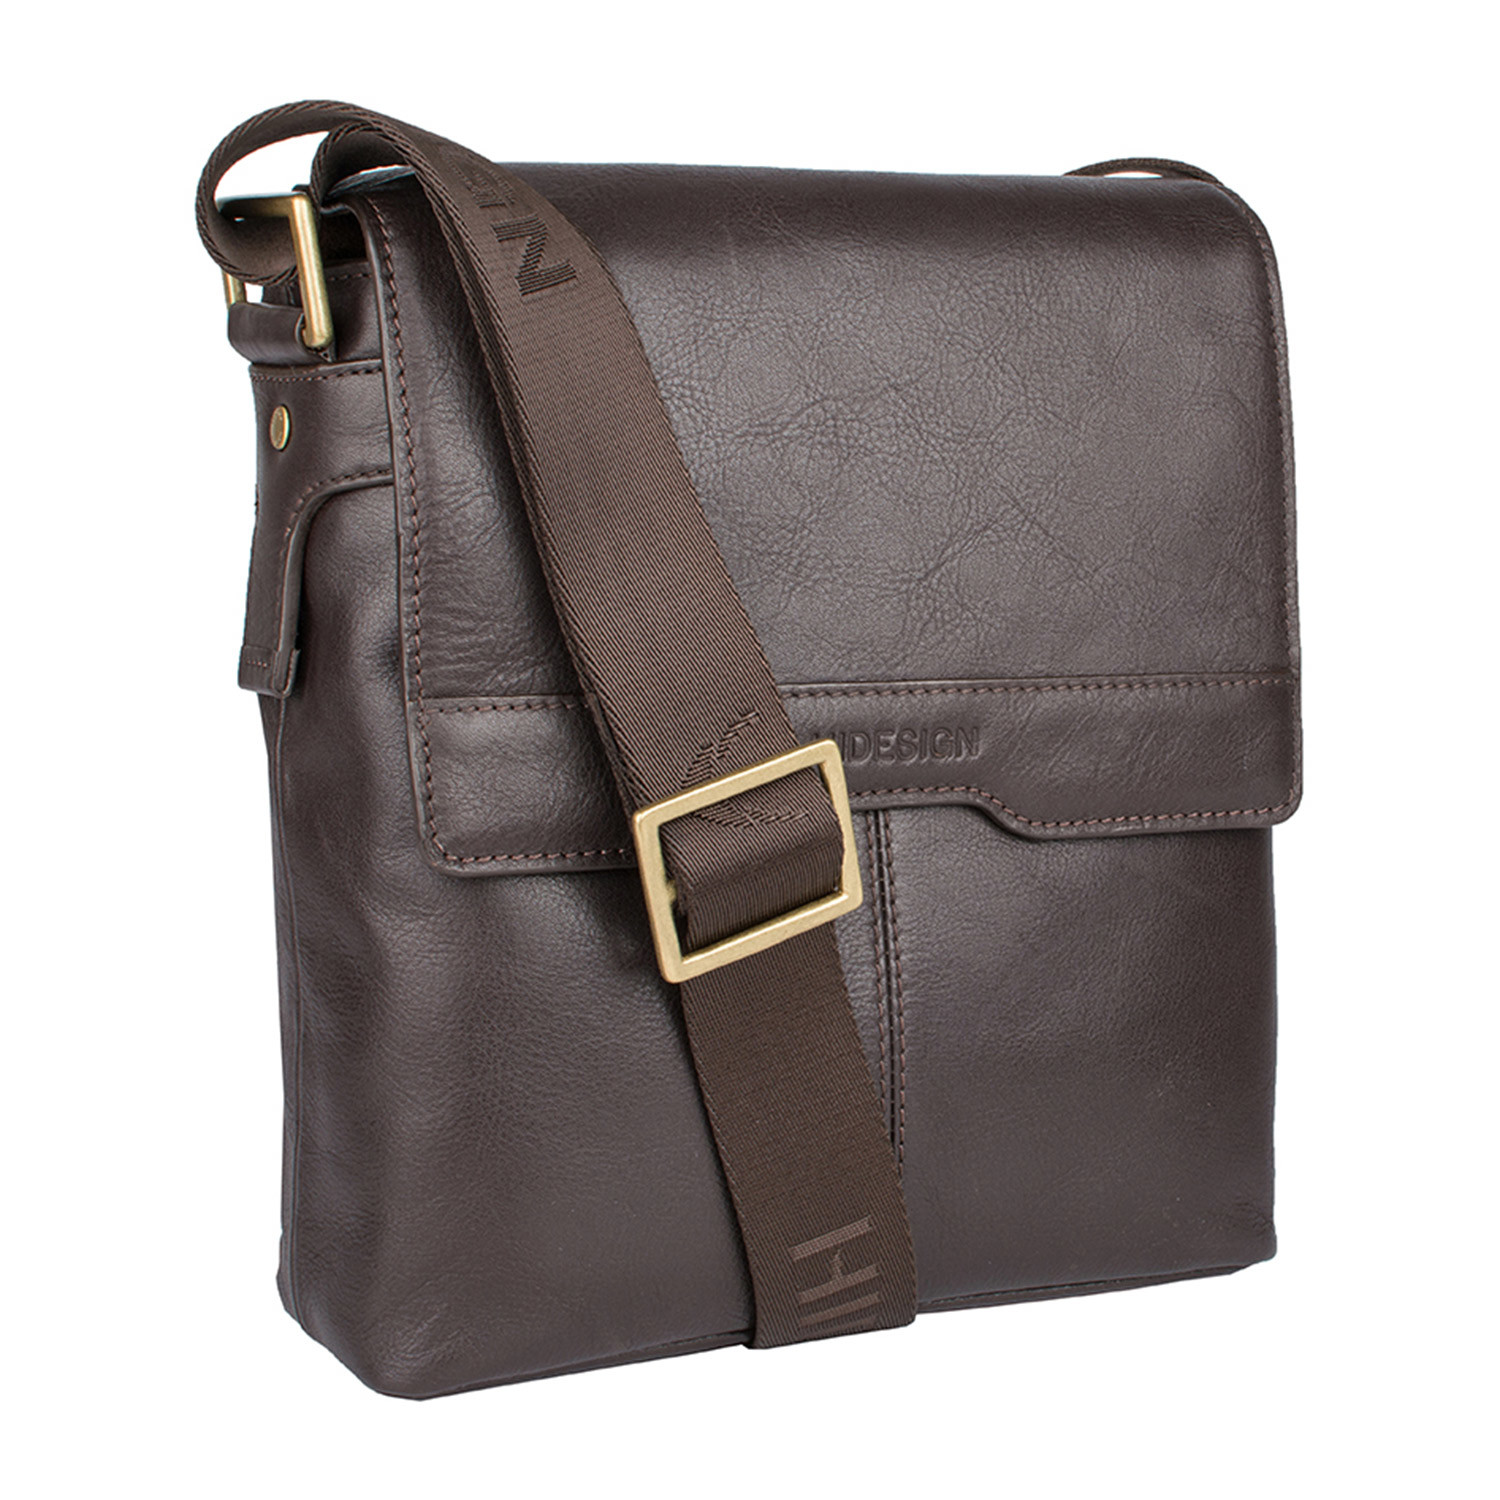 Helvellyn Leather Crossbody Brown Small Hidesign